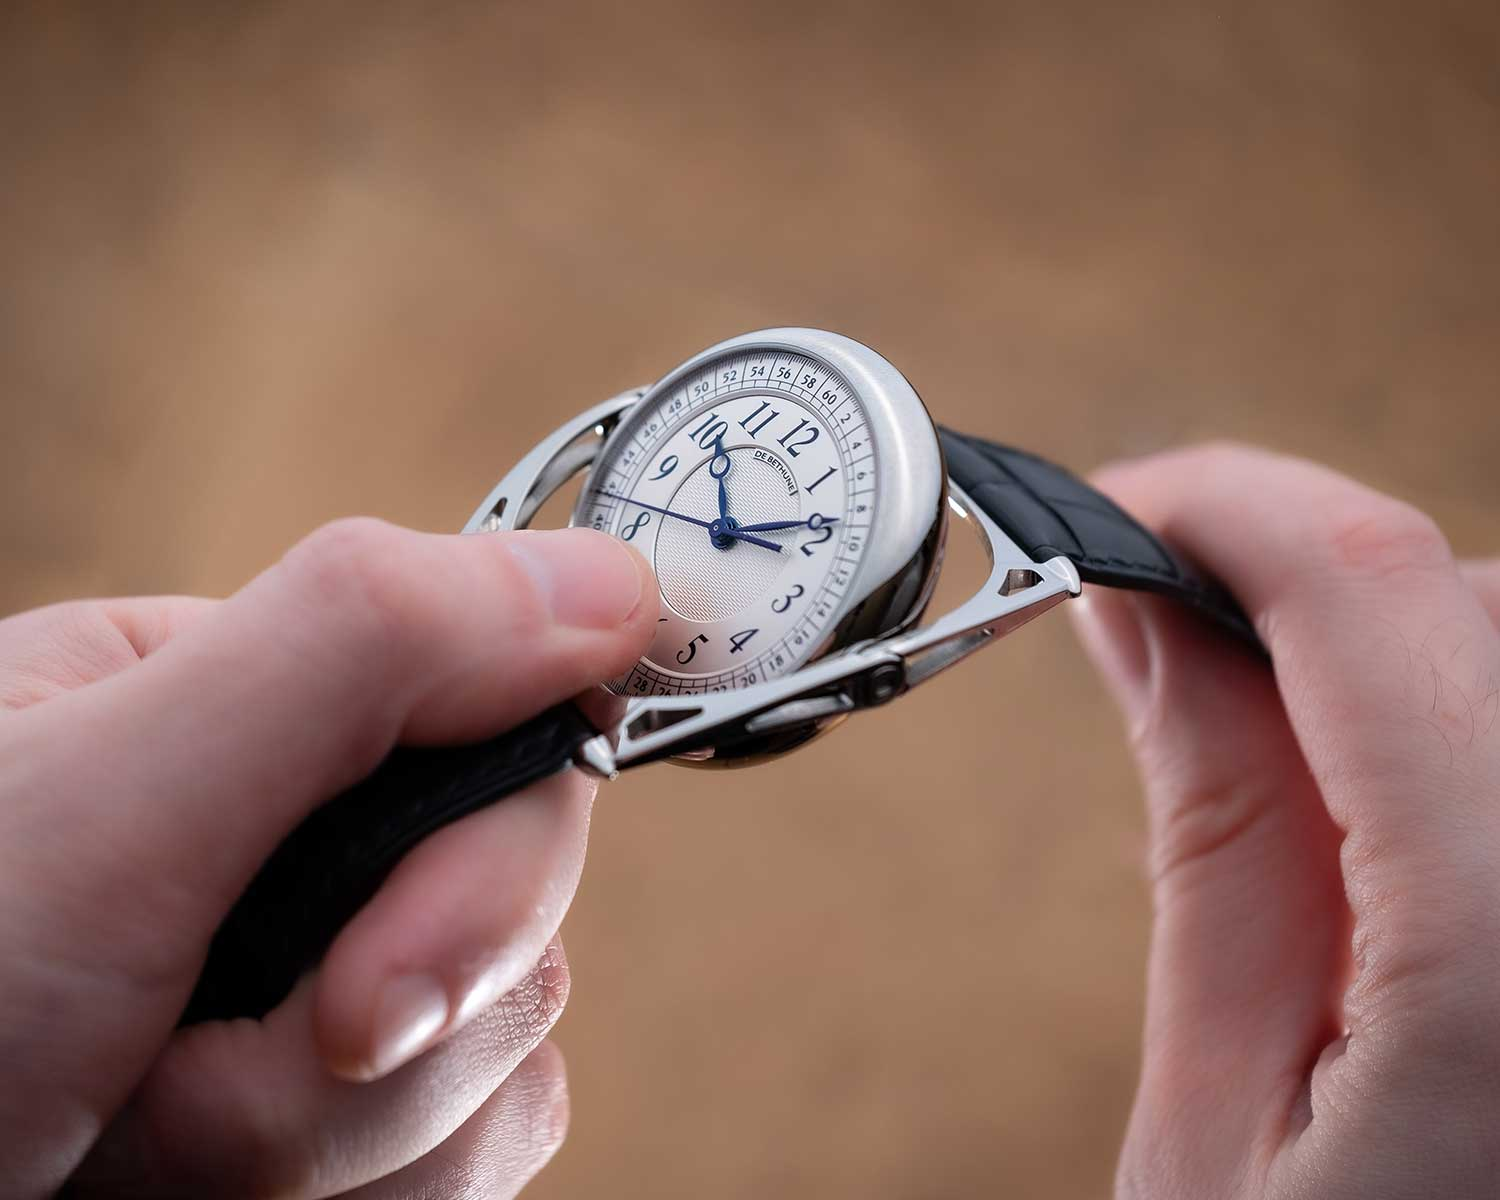 El De Bethune Kind of Two Tourbillon, girando